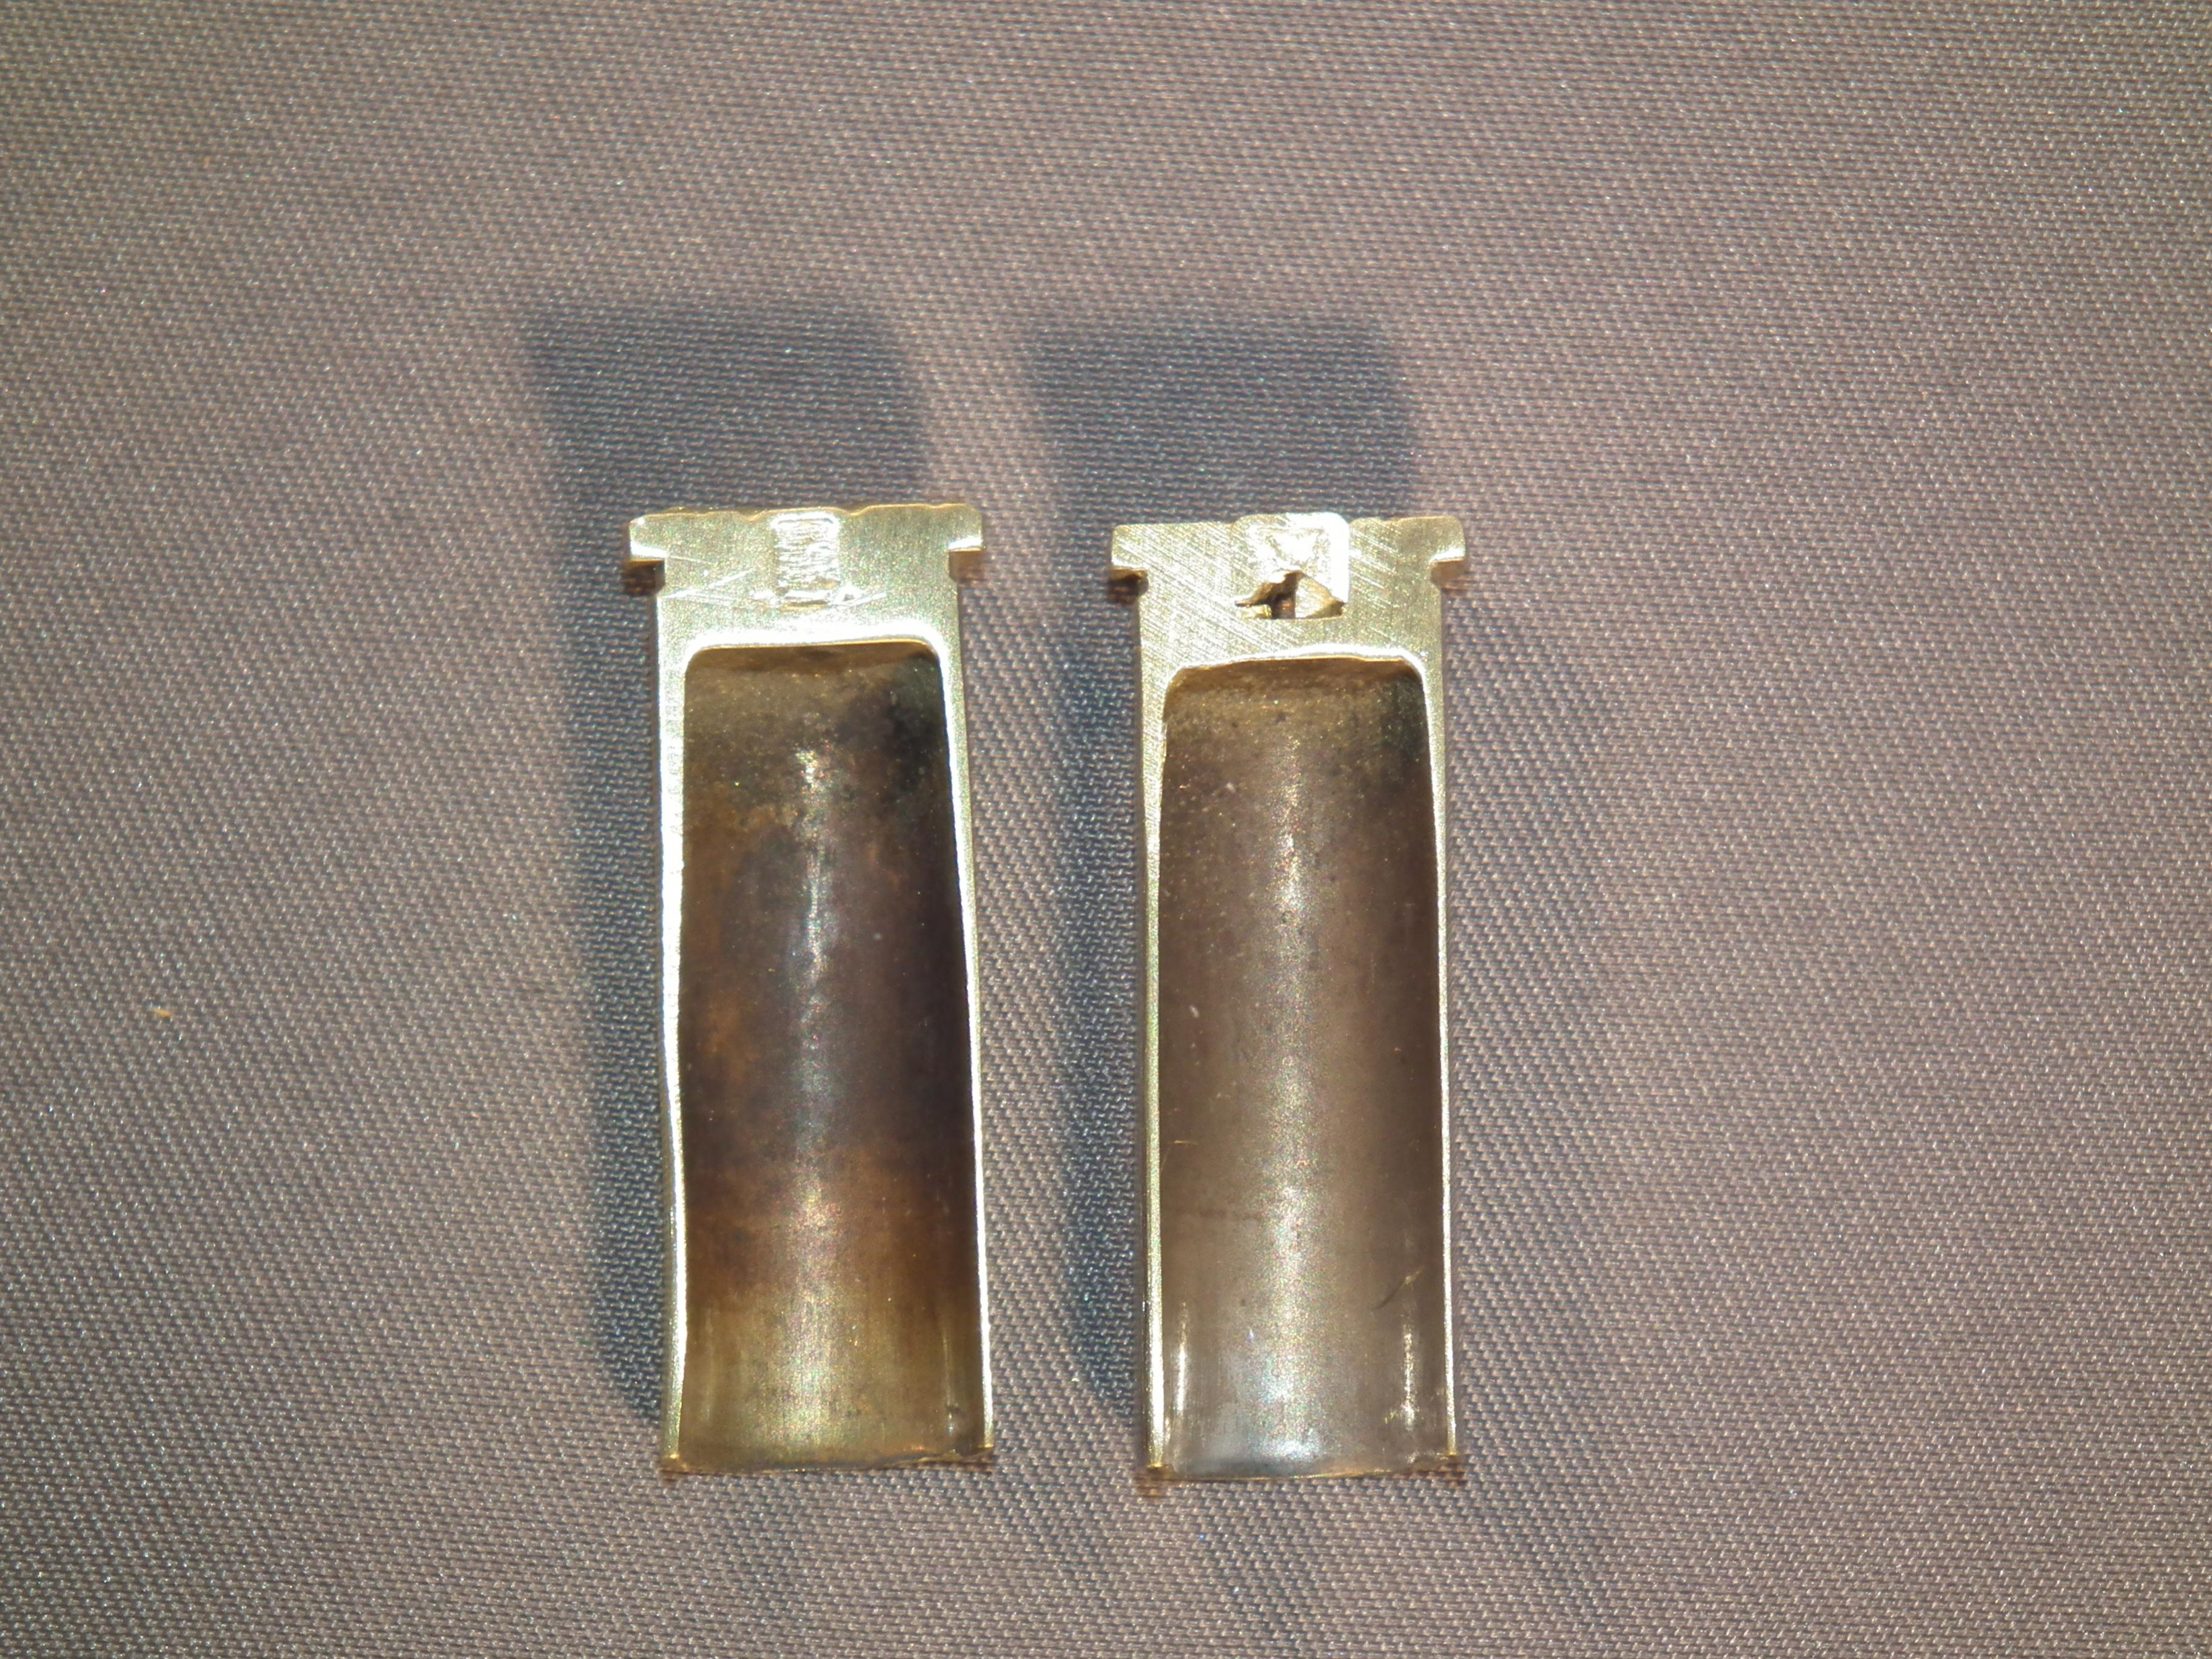 remington 38 cal match cases 26988d1335642941-differences-38-special-brass-case-cutaway